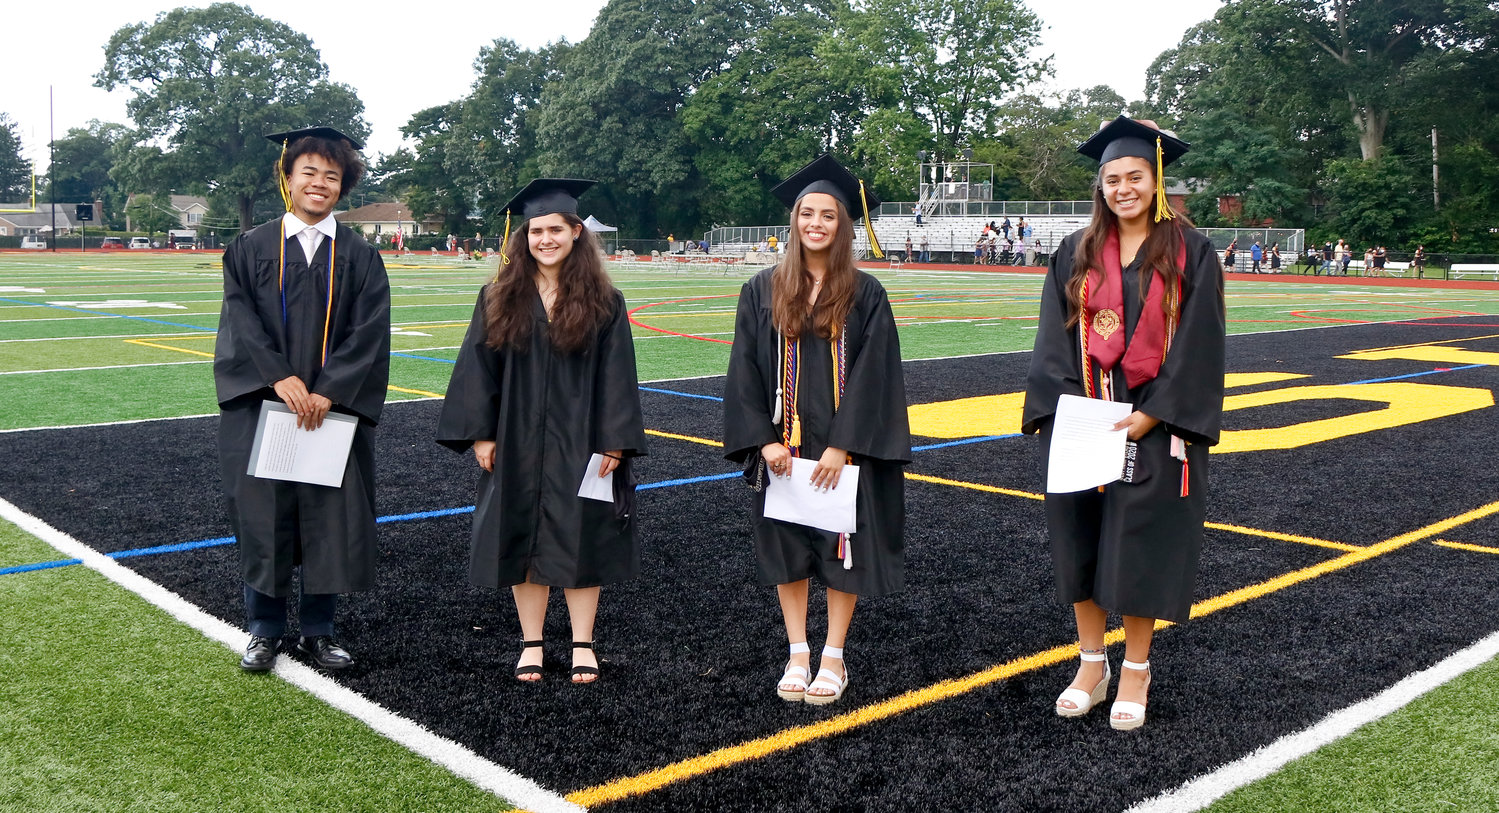 Valedictorian Runako Miot, left, salutatorian Sabrina Manuel and class co-presidents Victoria Tudisco and Kristine Romero spoke at all four of the graduation ceremonies.